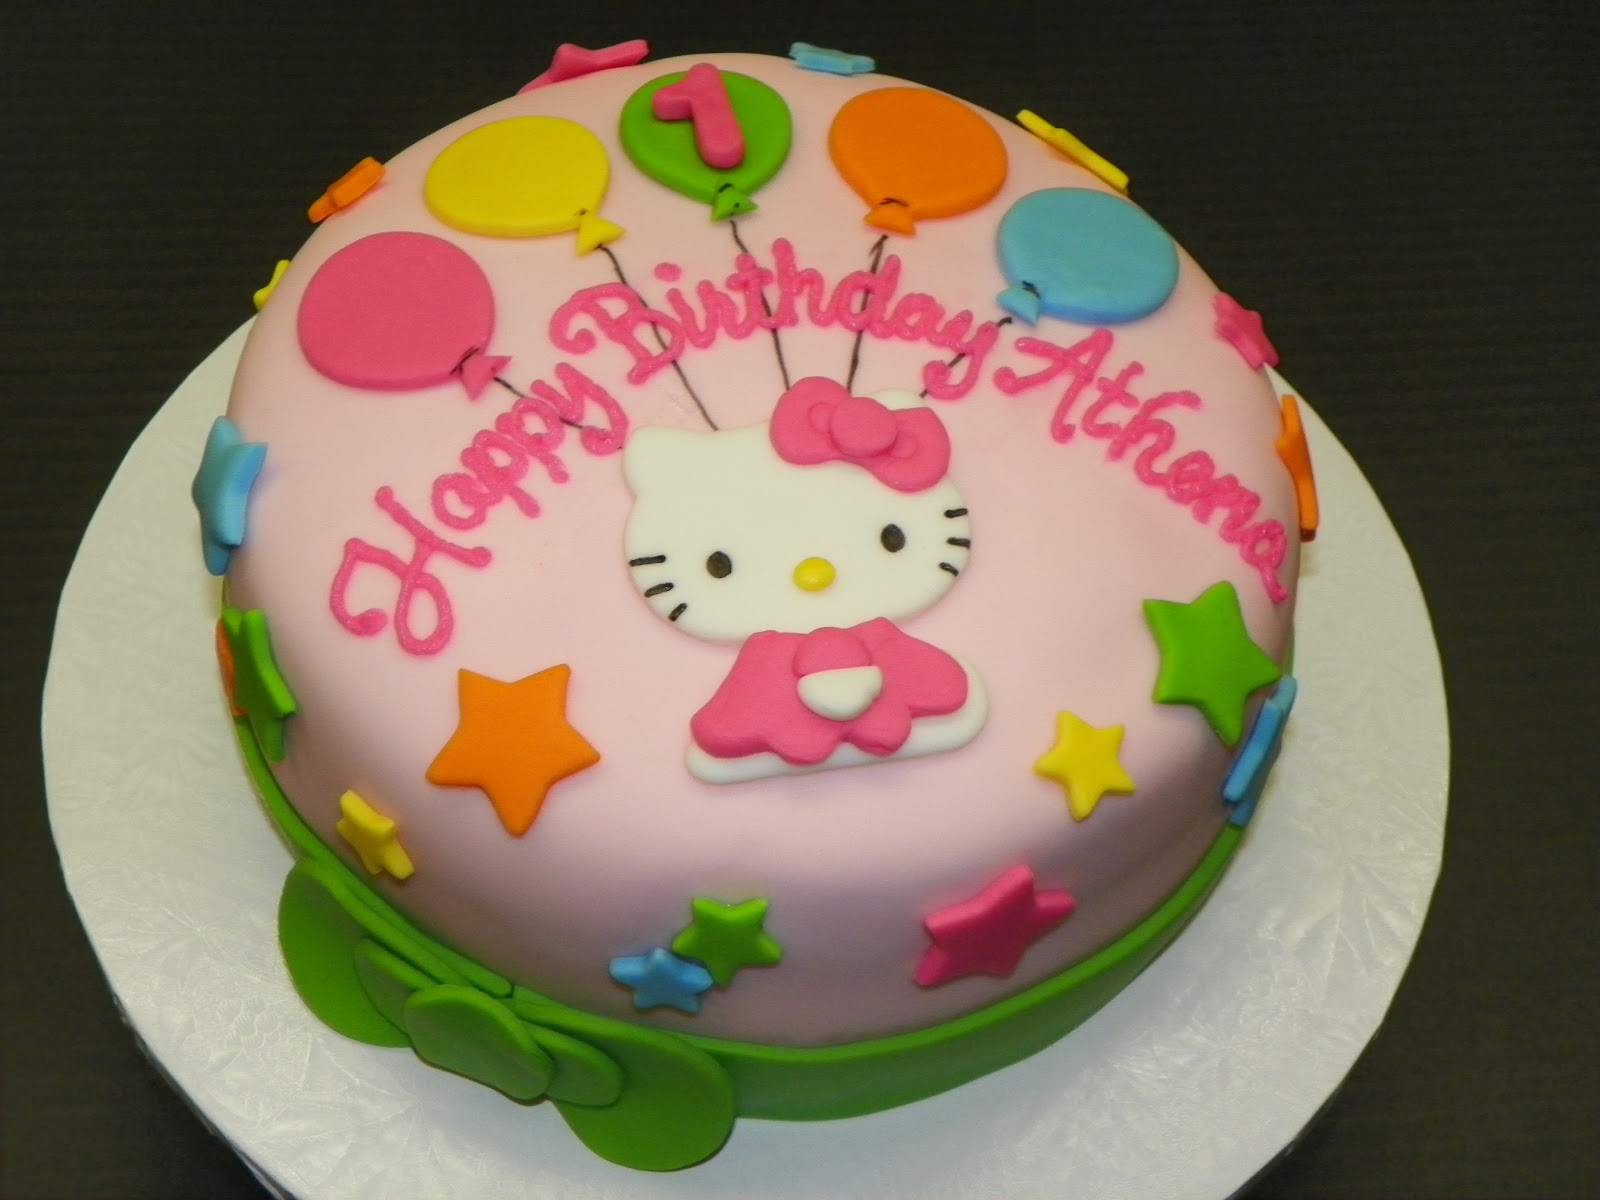 Plumeria Cake Studio Hello Kitty First Birthday Cake